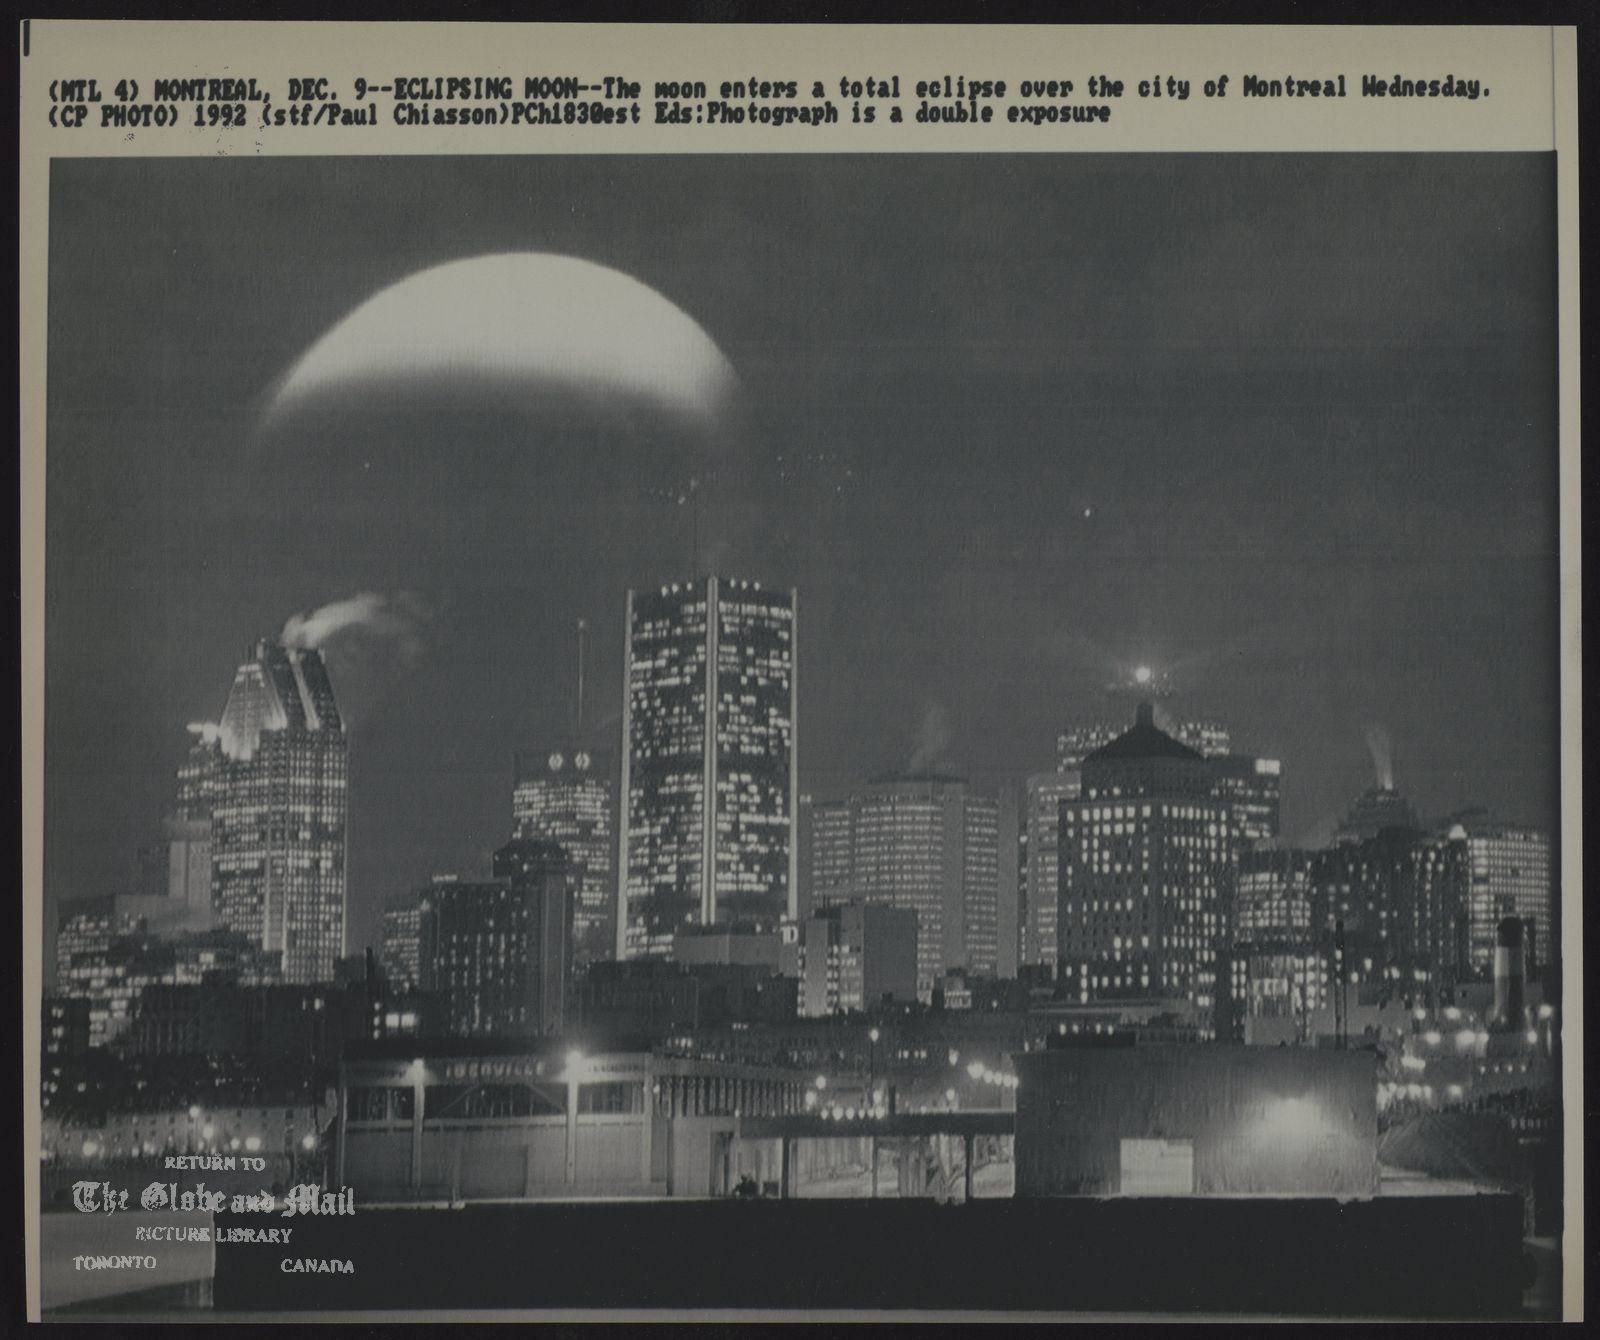 ECLIPSE (MTL 4) MONTREAL, DEC. 9--ECLIPSING MOON--The moon enters a total eclipse over the city of Montreal Wednesday. Eds: Photograph is a double exposure (CP Photo) 1992 (stf/Paul Chiasson) PCh1830est